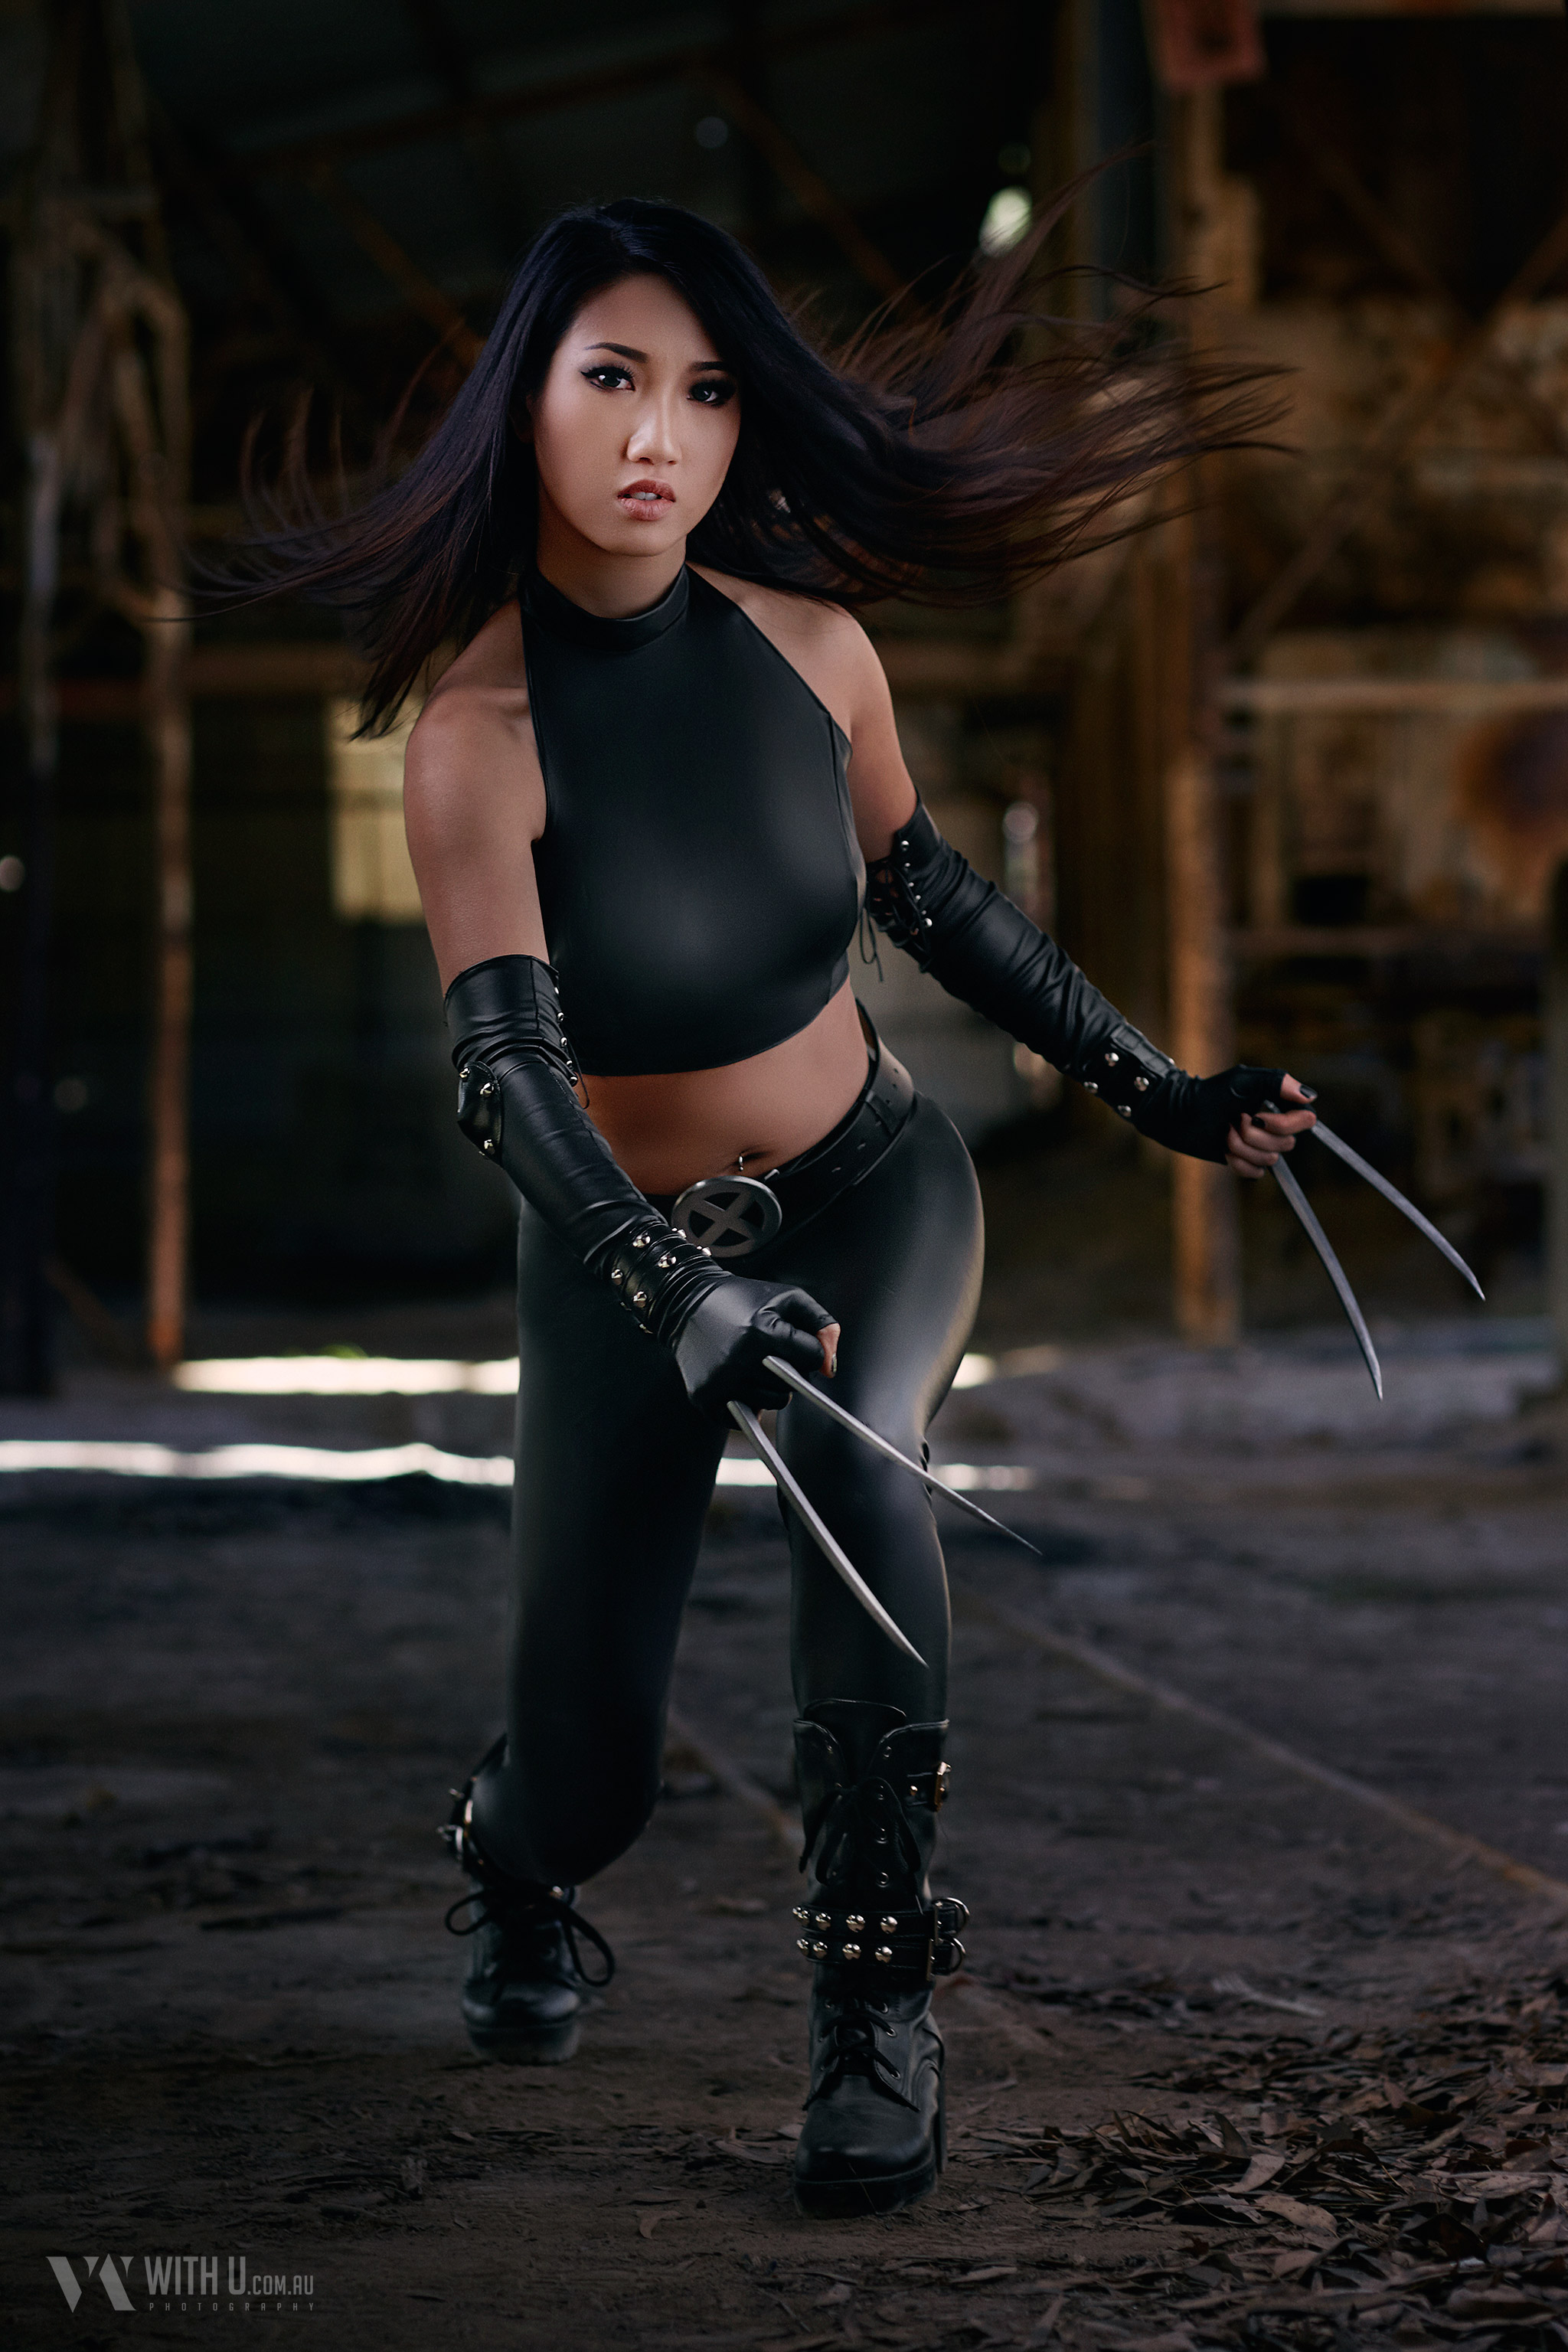 X-23-Perth-portraits-Cosplay-Withu-Photography-05-small